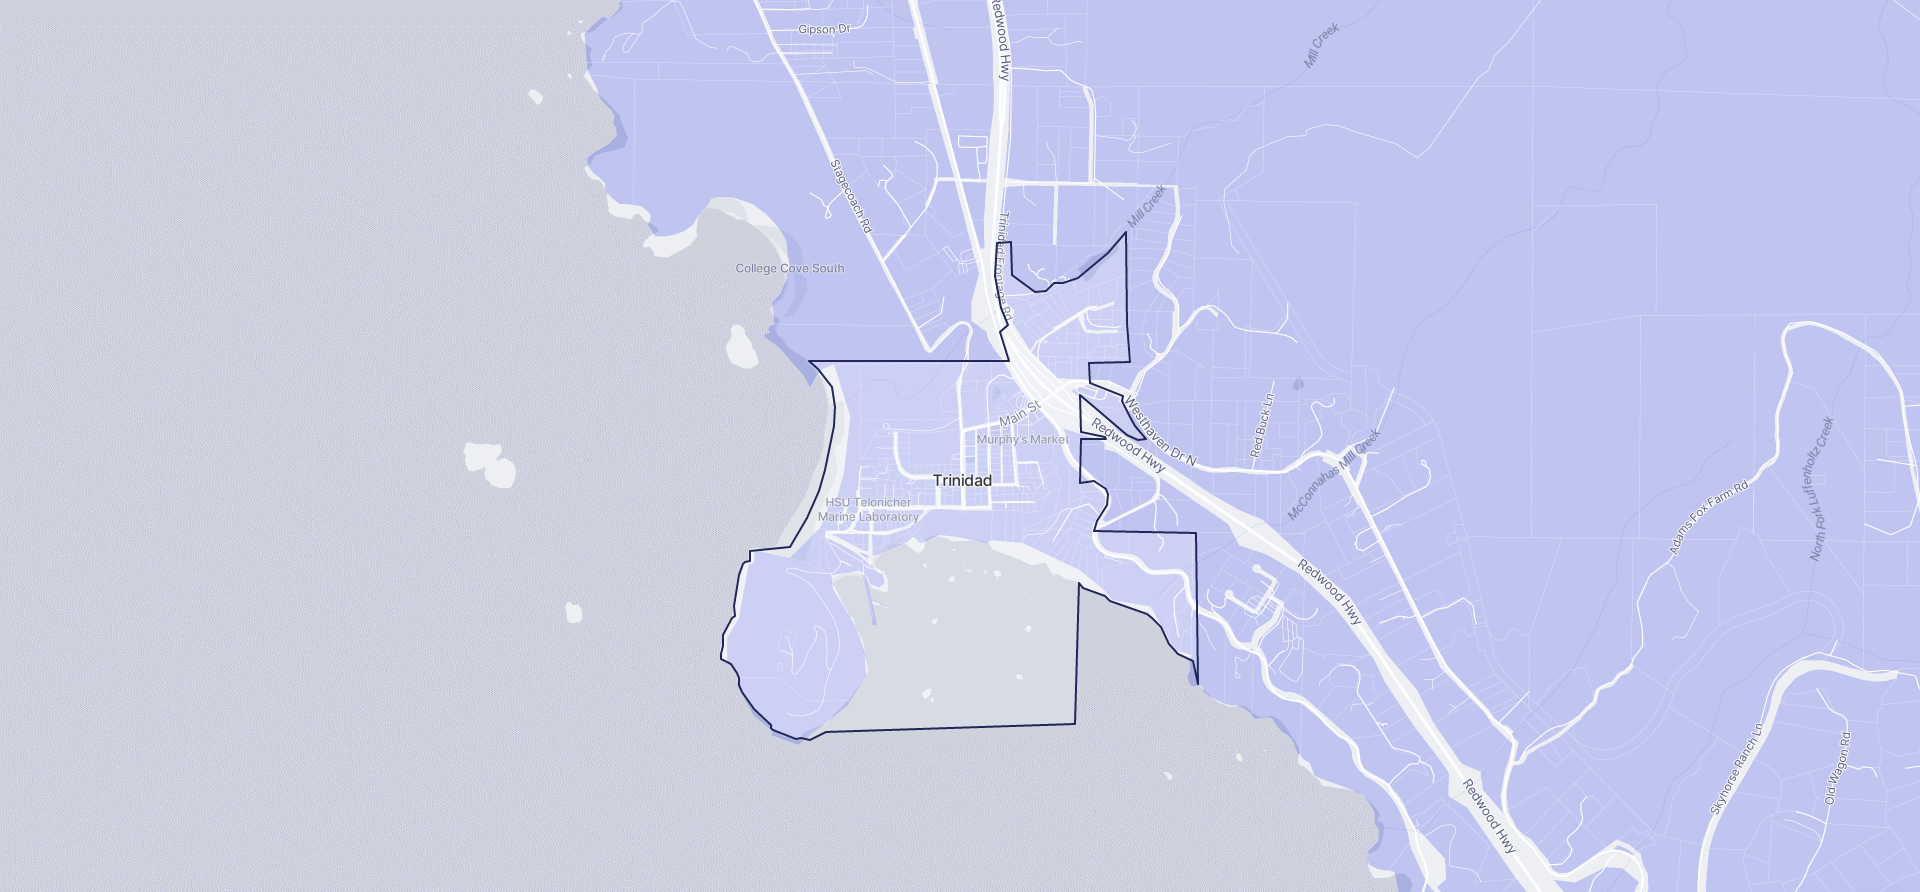 Image of Trinidad boundaries on a map.